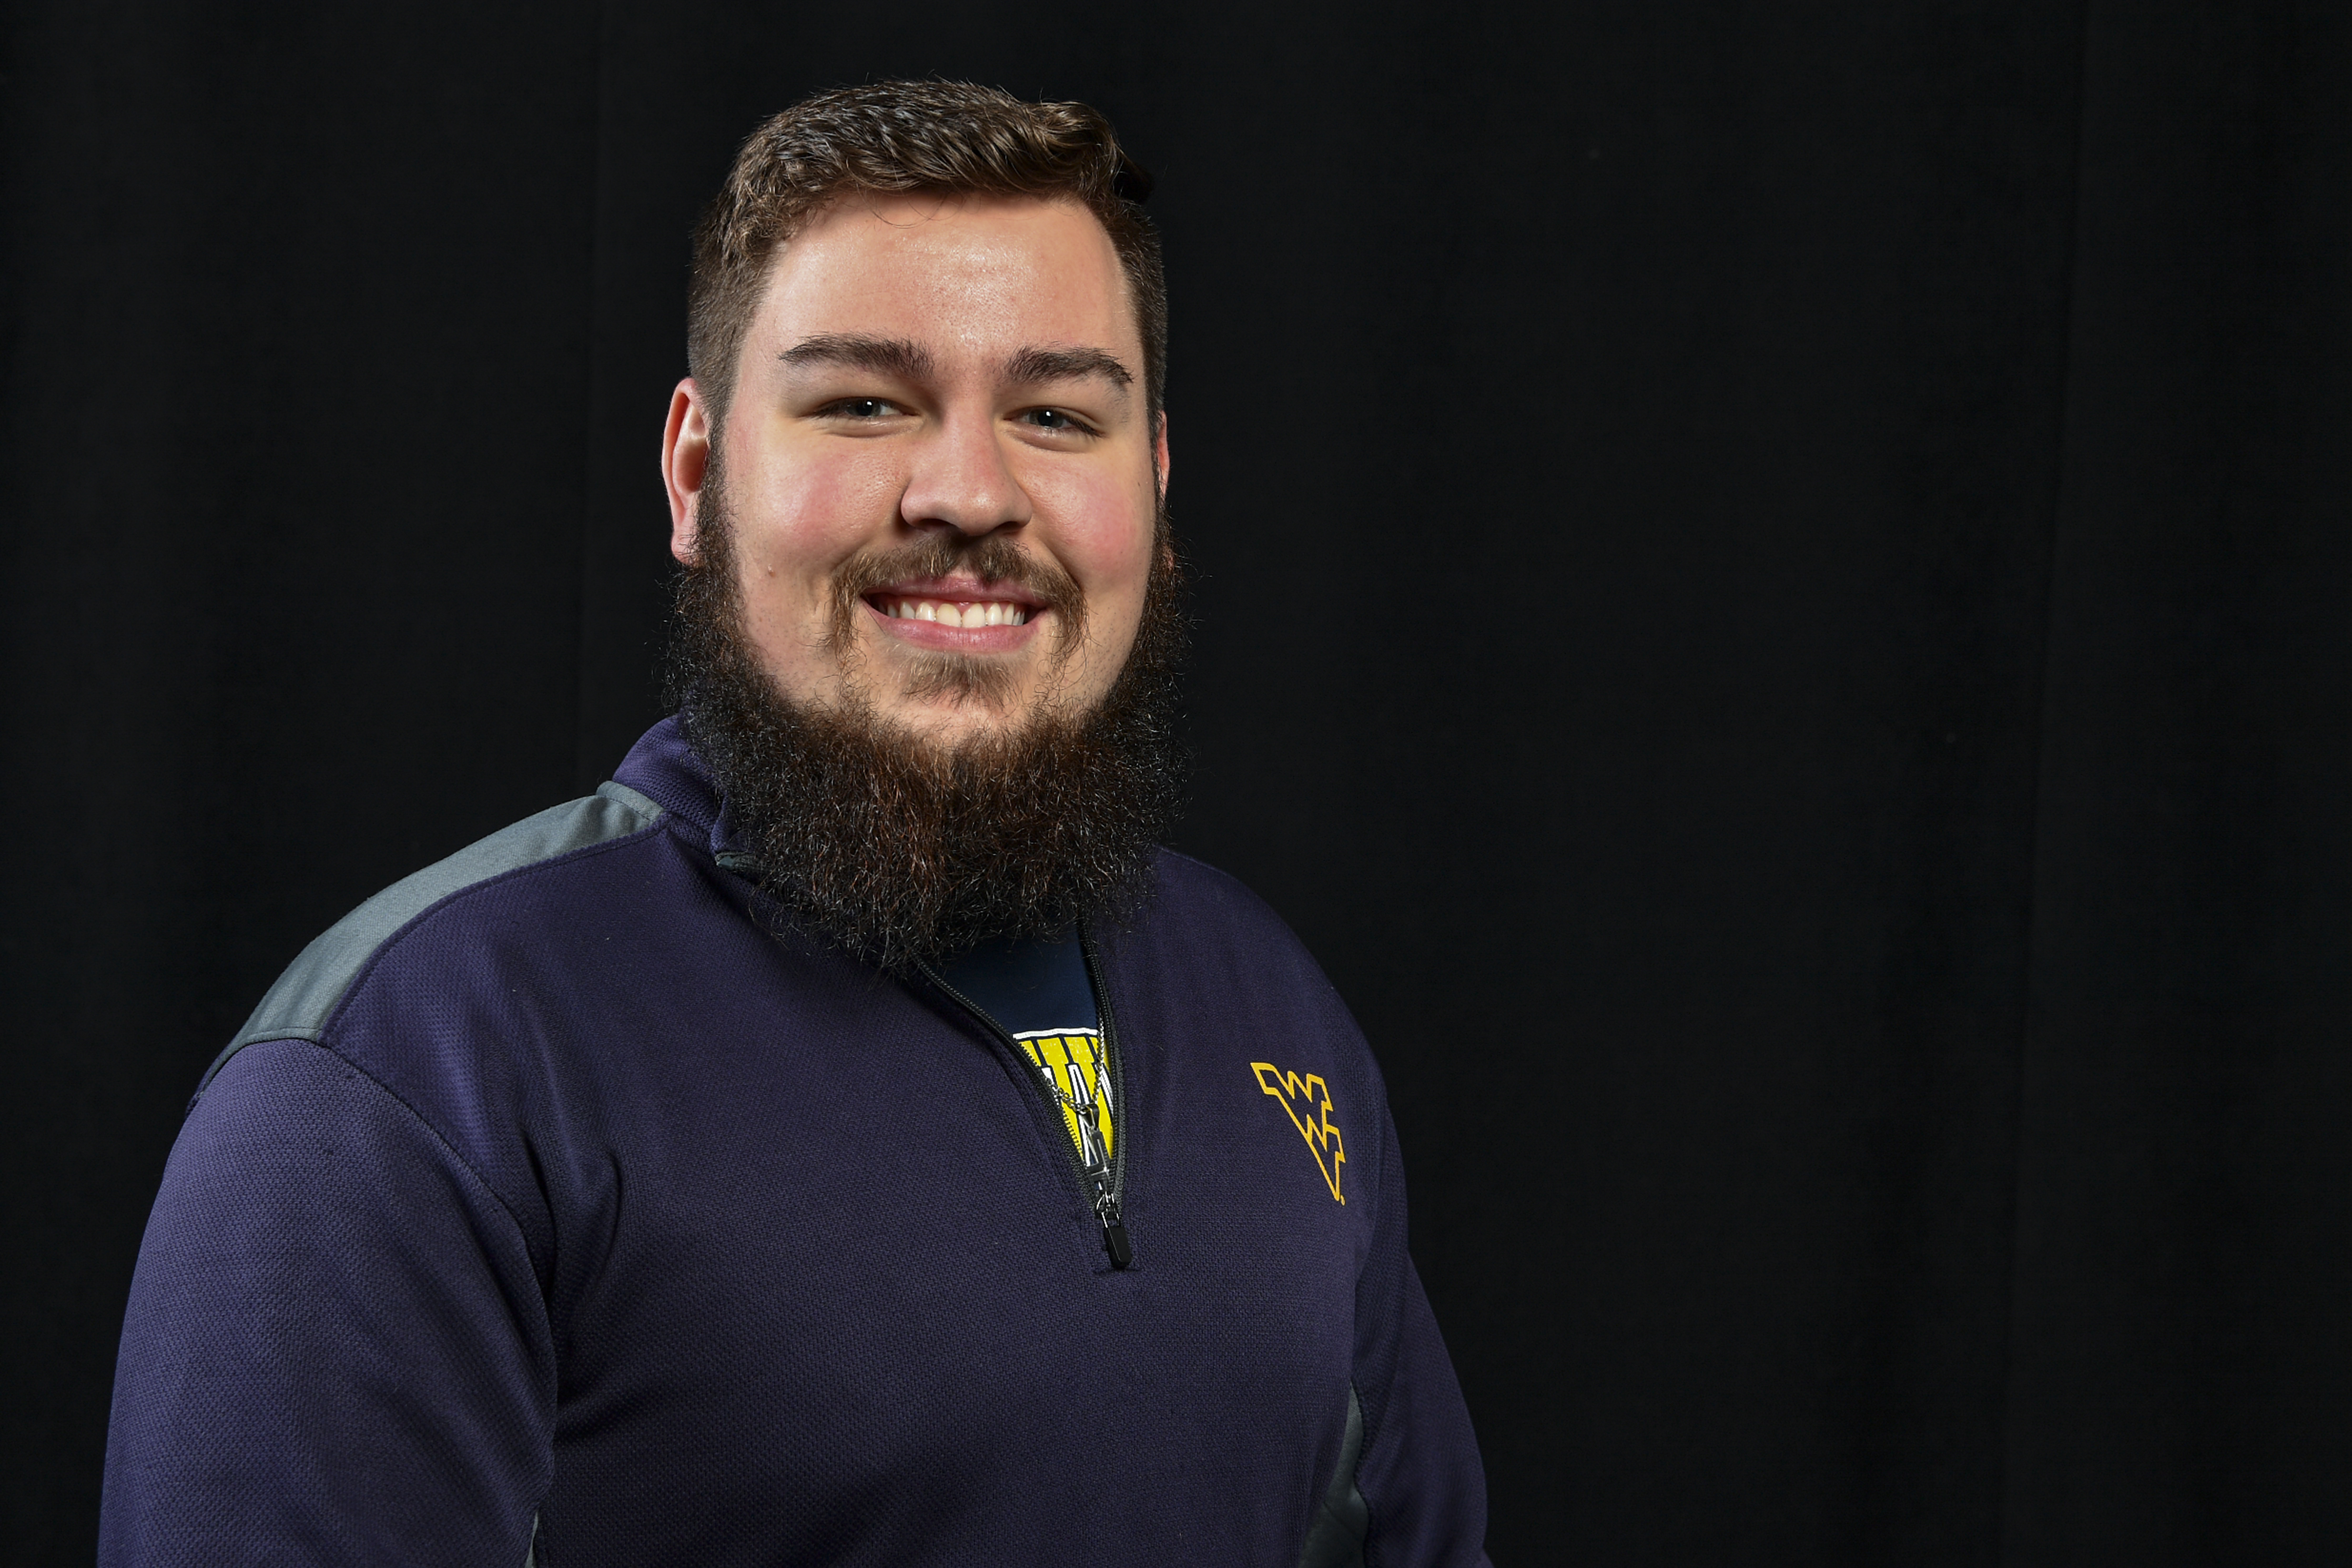 Eads Named Wvu S 66th Mountaineer Mascot Wvu Today